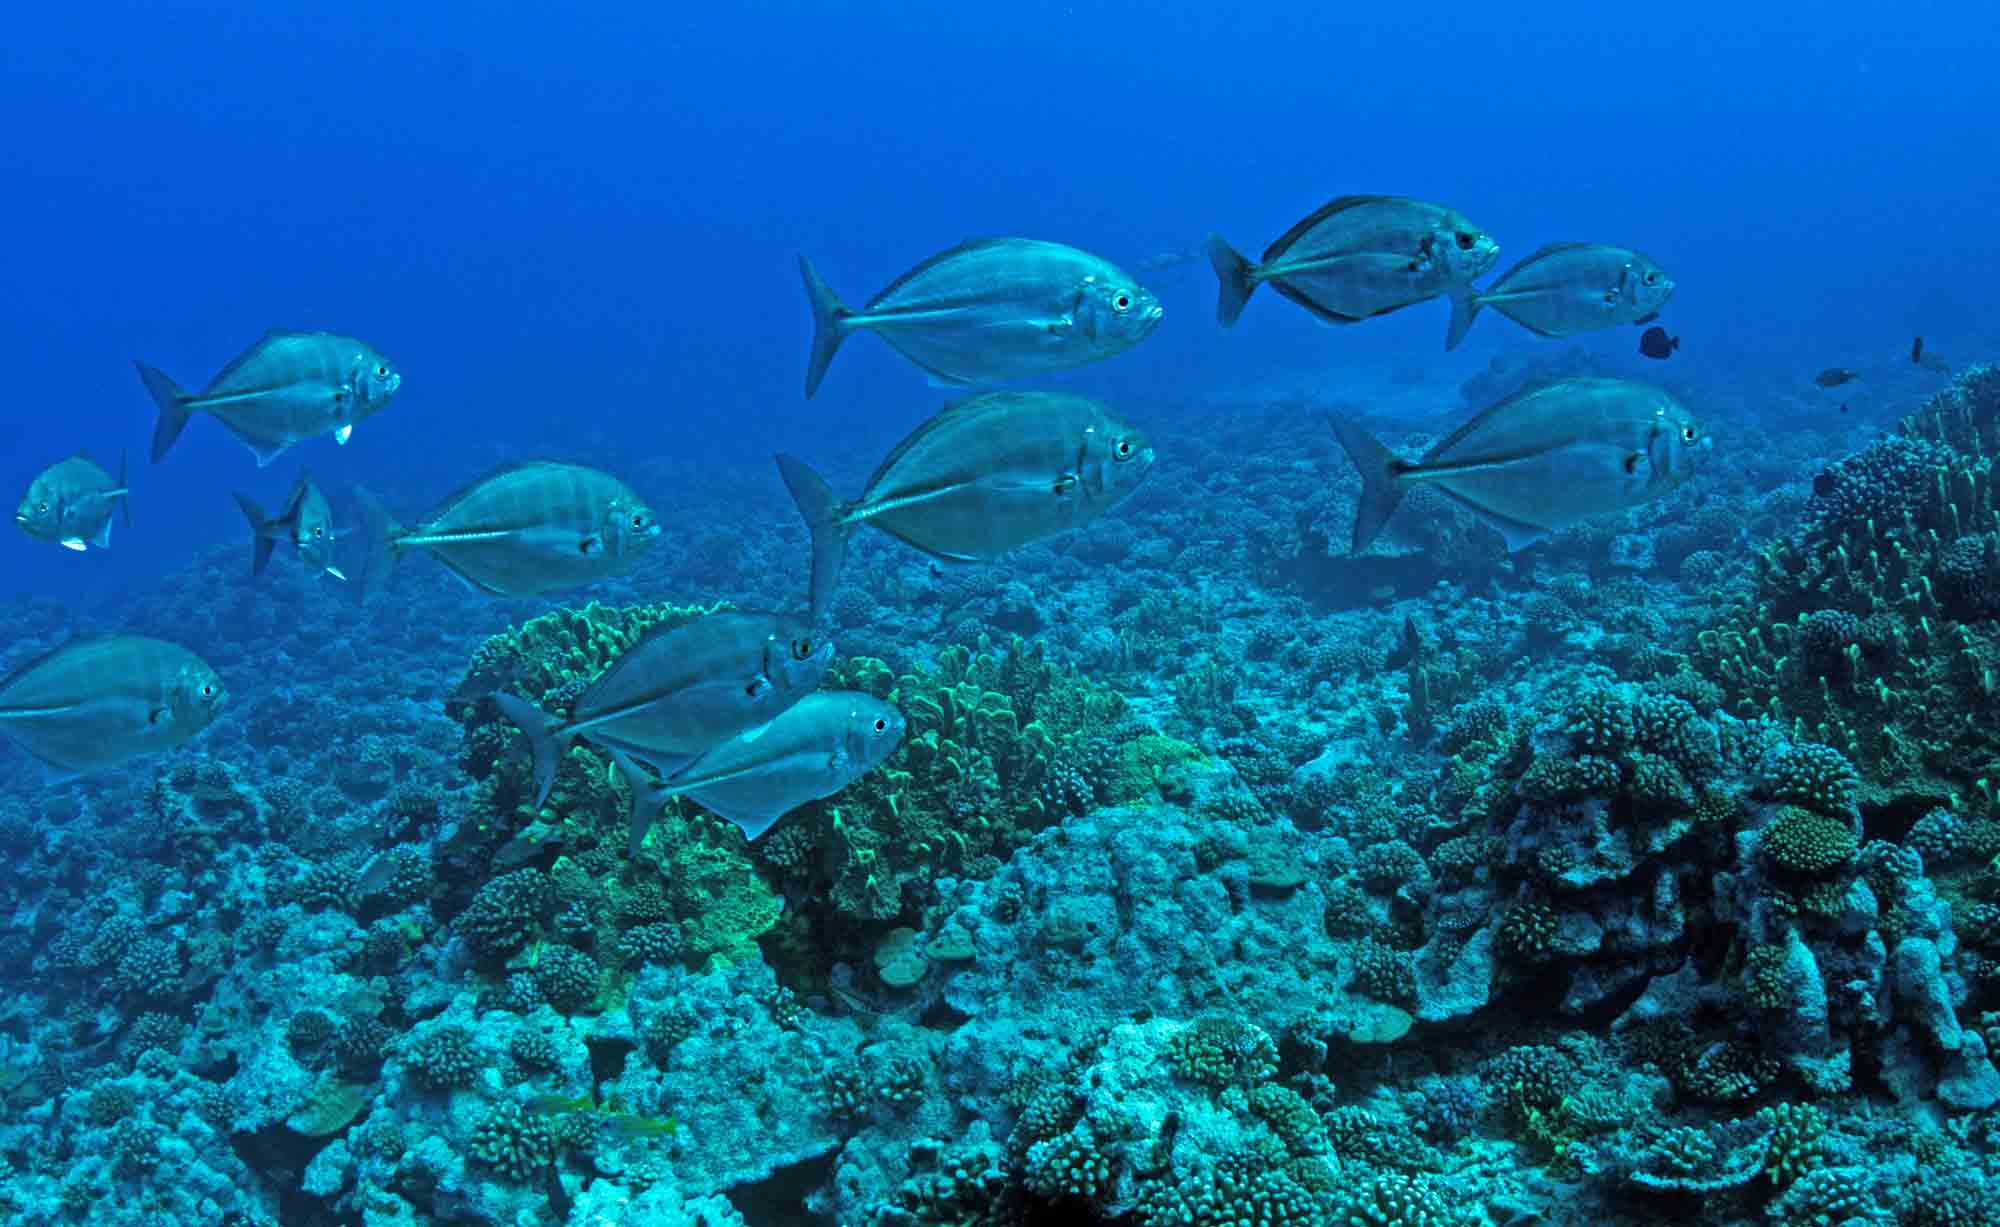 Coral reefs Snorkeling Tropical Fish Best Boat Tour lagoon Freediving Moorea Ocean Adventures Tahiti